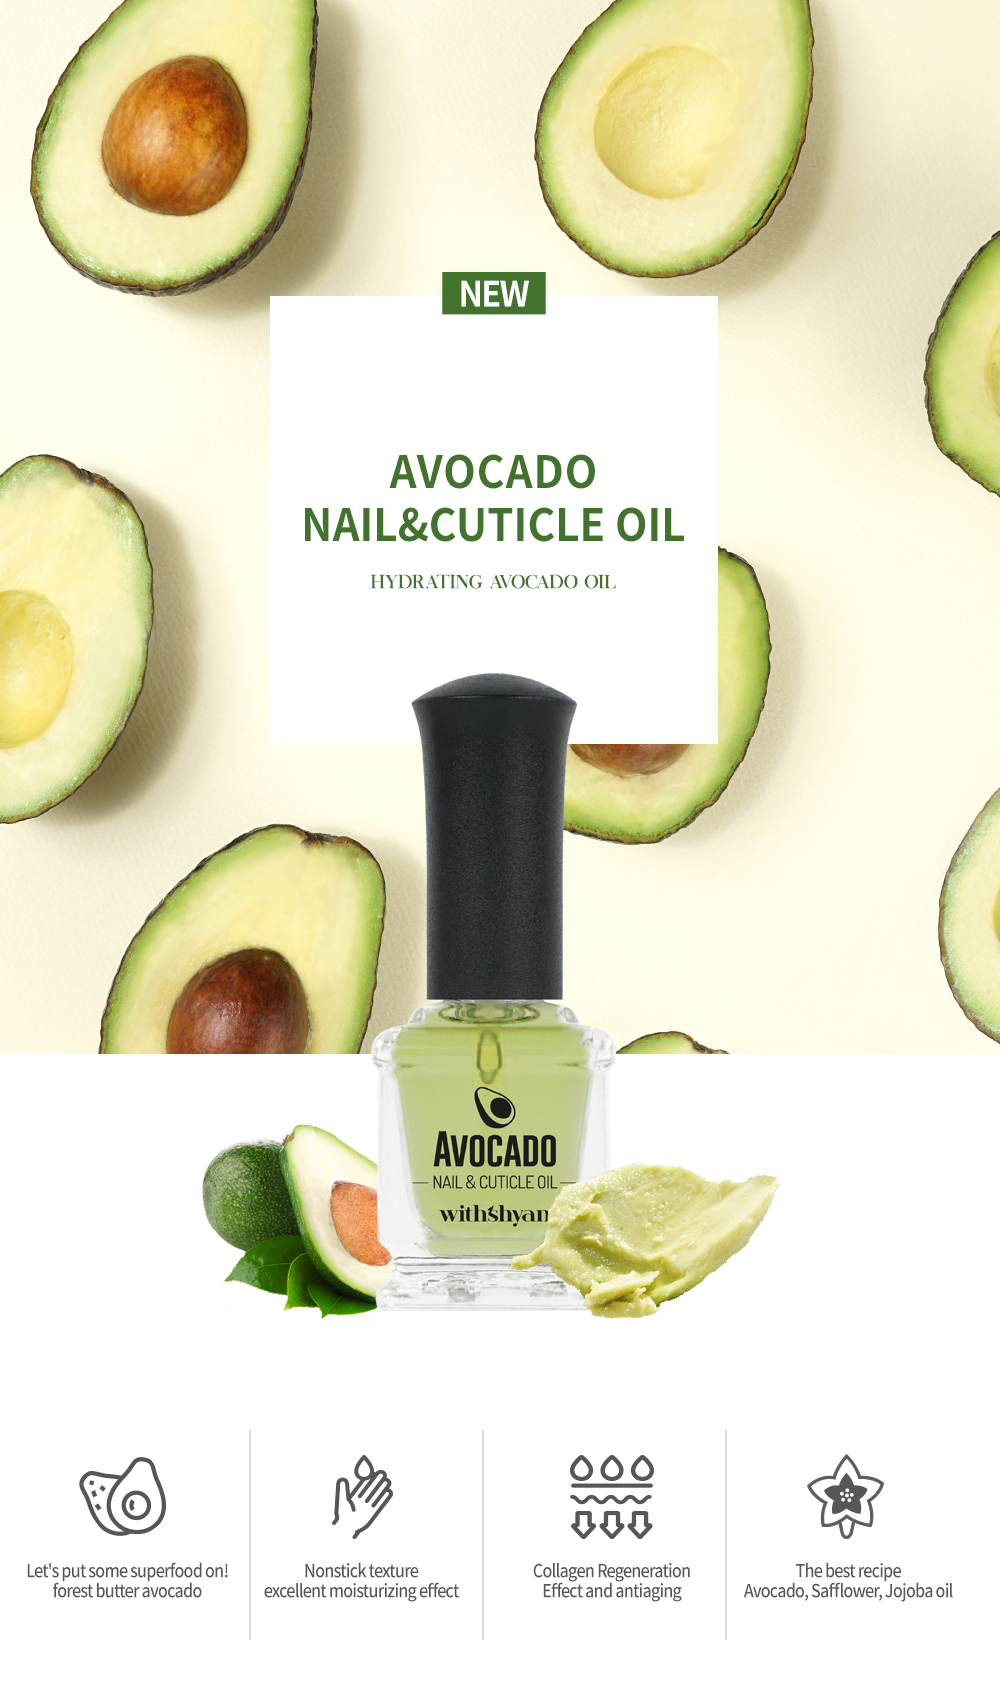 Feature of Avocado Nail& Cuticle Oil